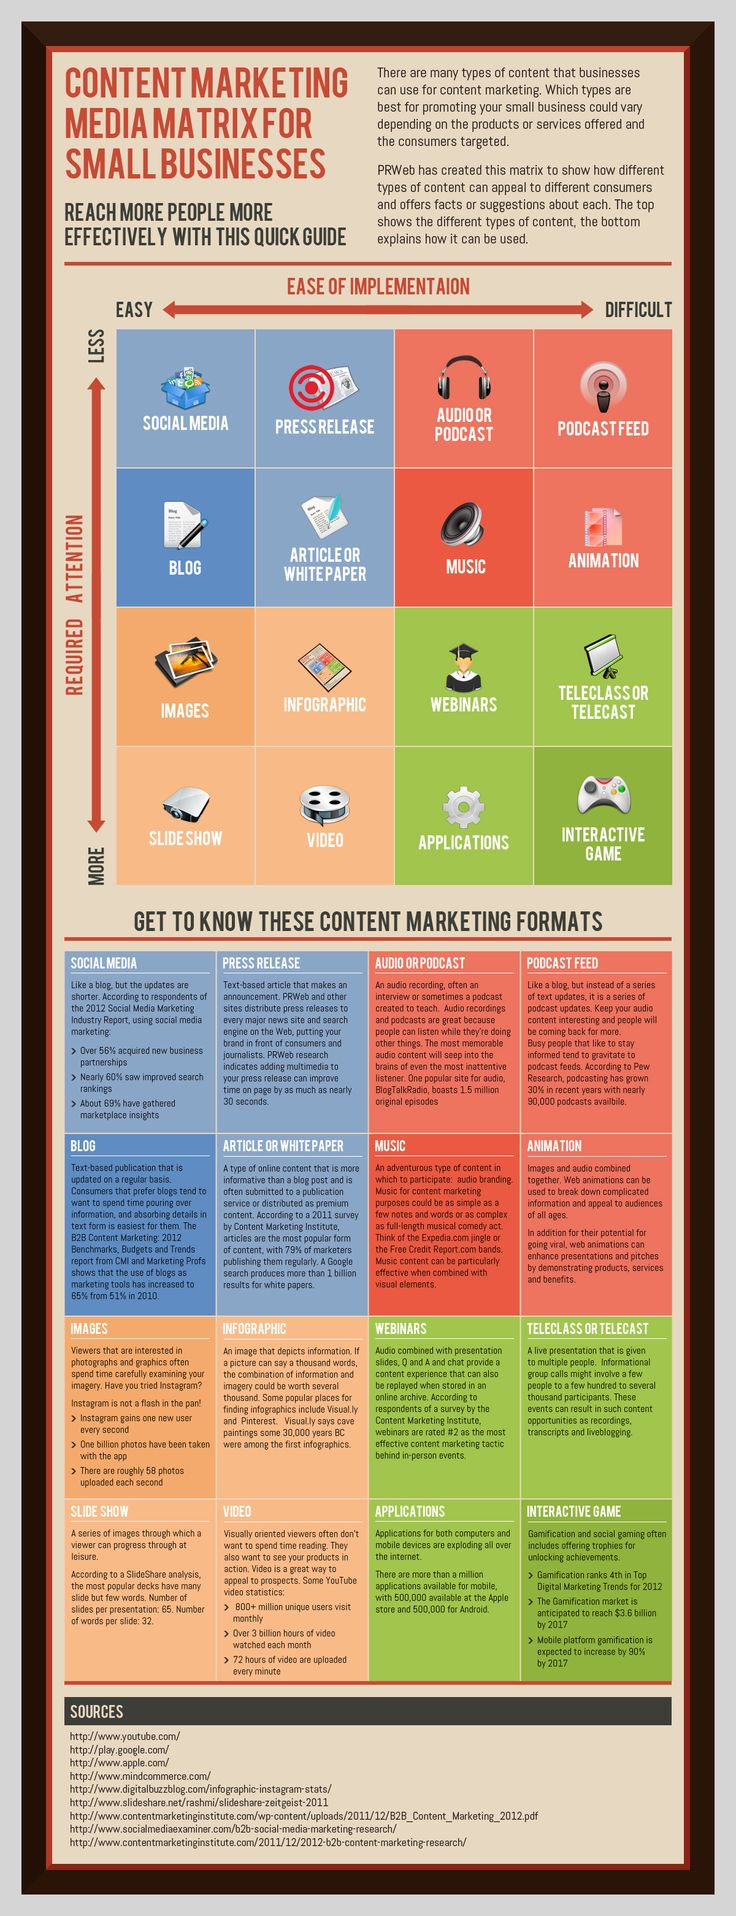 Infographic: The Content Marketing Matrix for Small Businesses